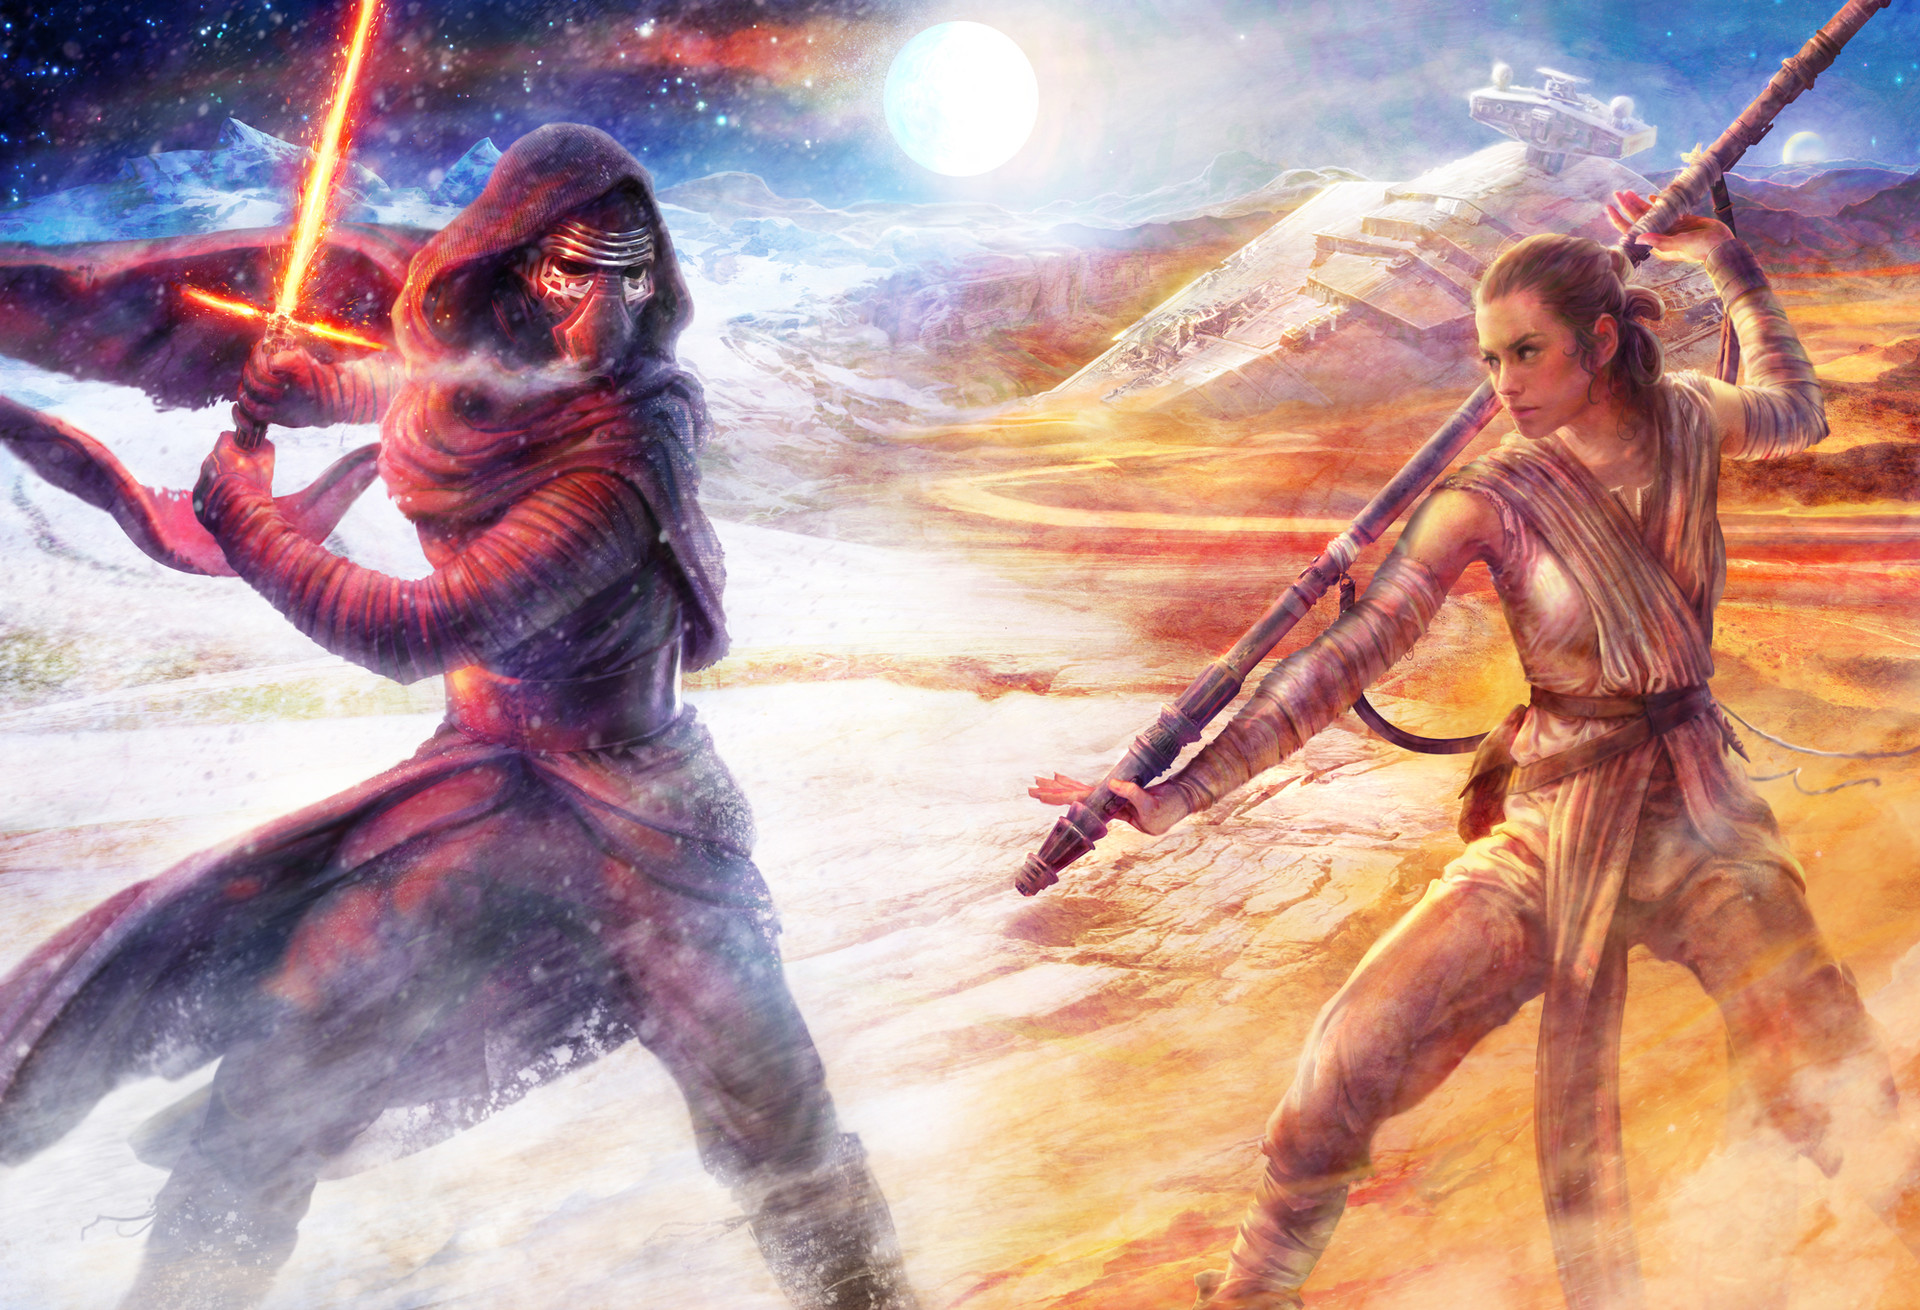 Andrew theophilopoulos starwars